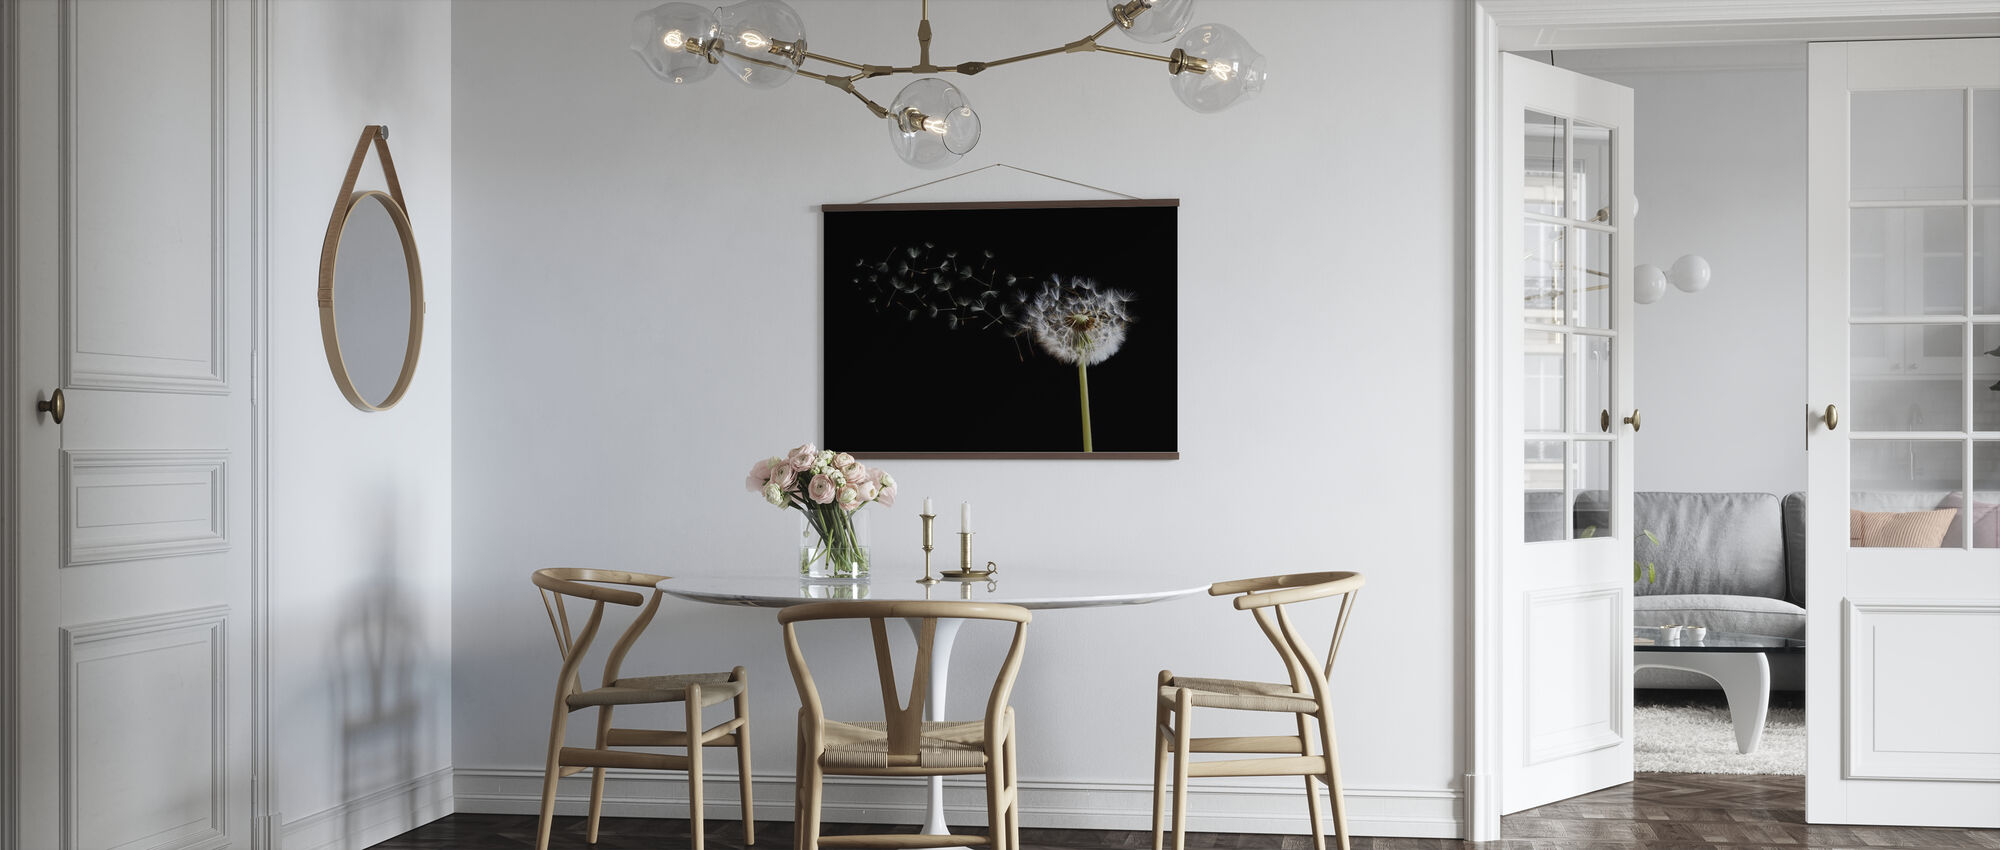 Dandelion Seeds in the Wind - Poster - Kitchen